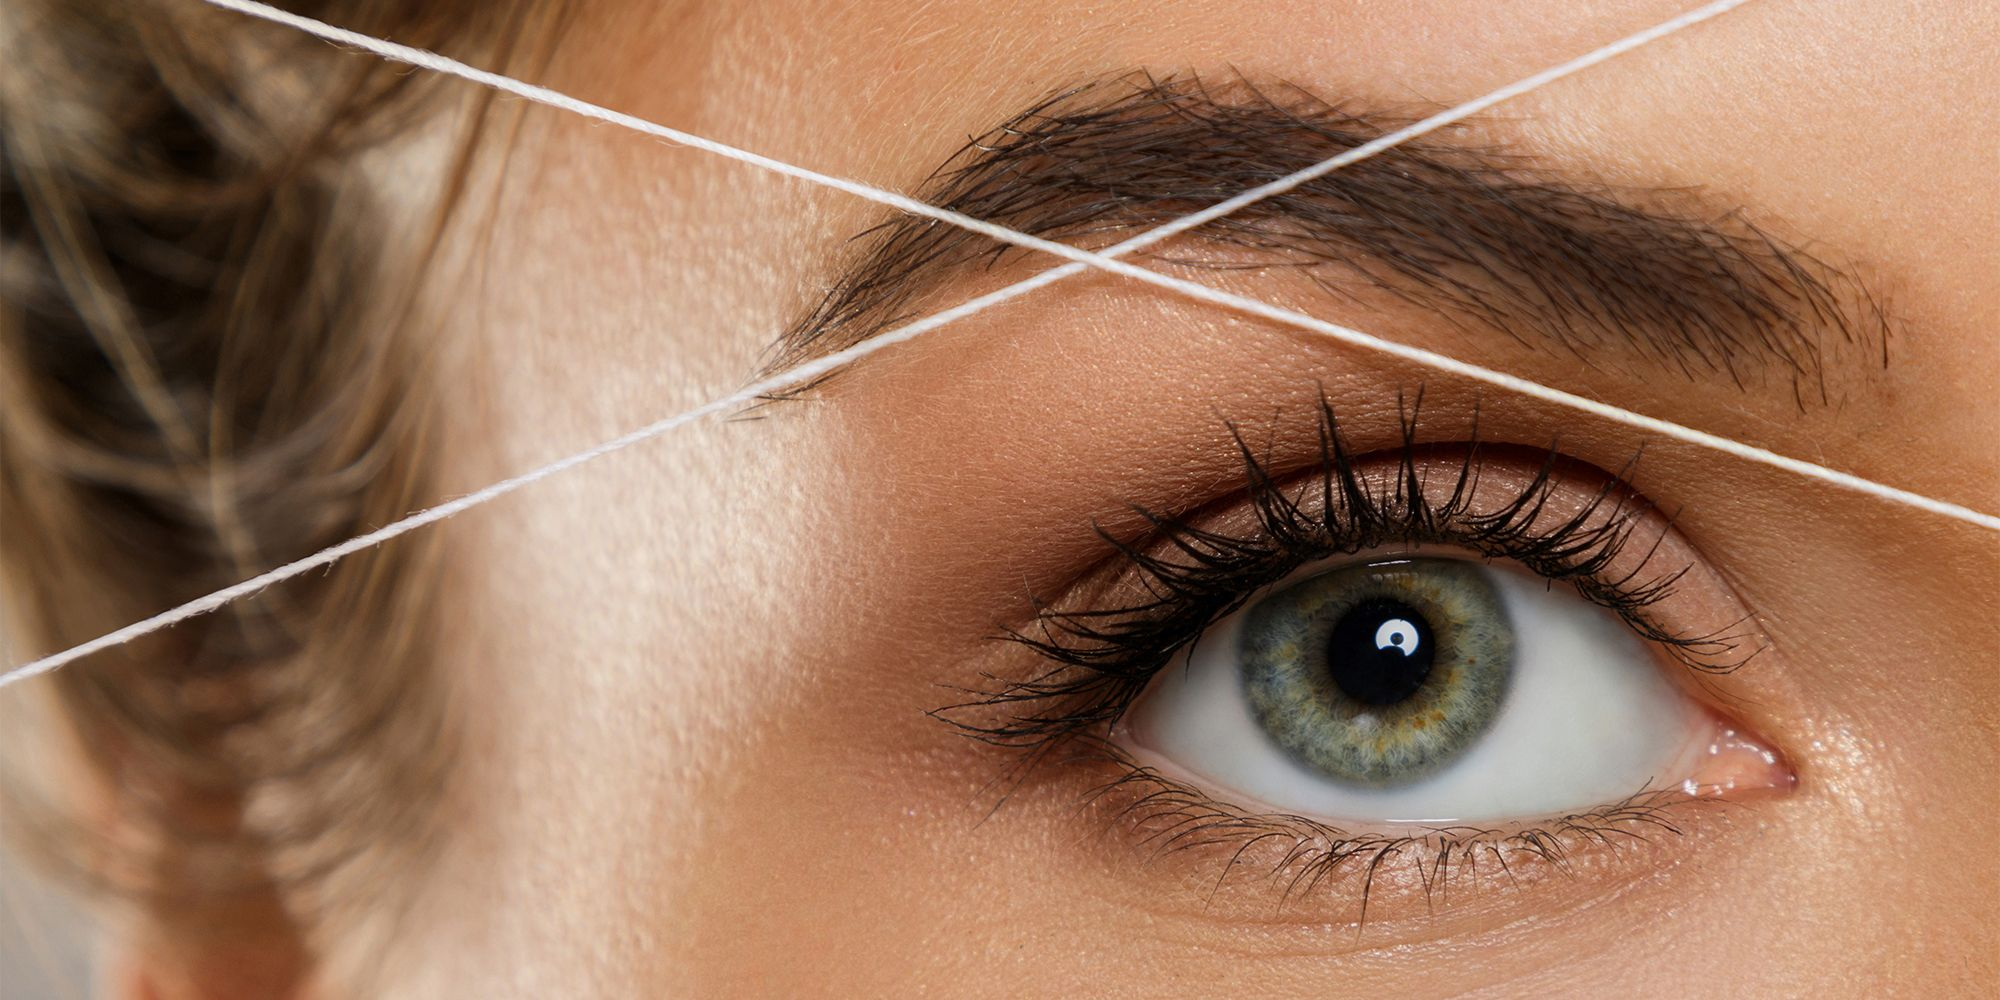 Eyebrow Threading: What to Know - What Is Eyebrow Threading?